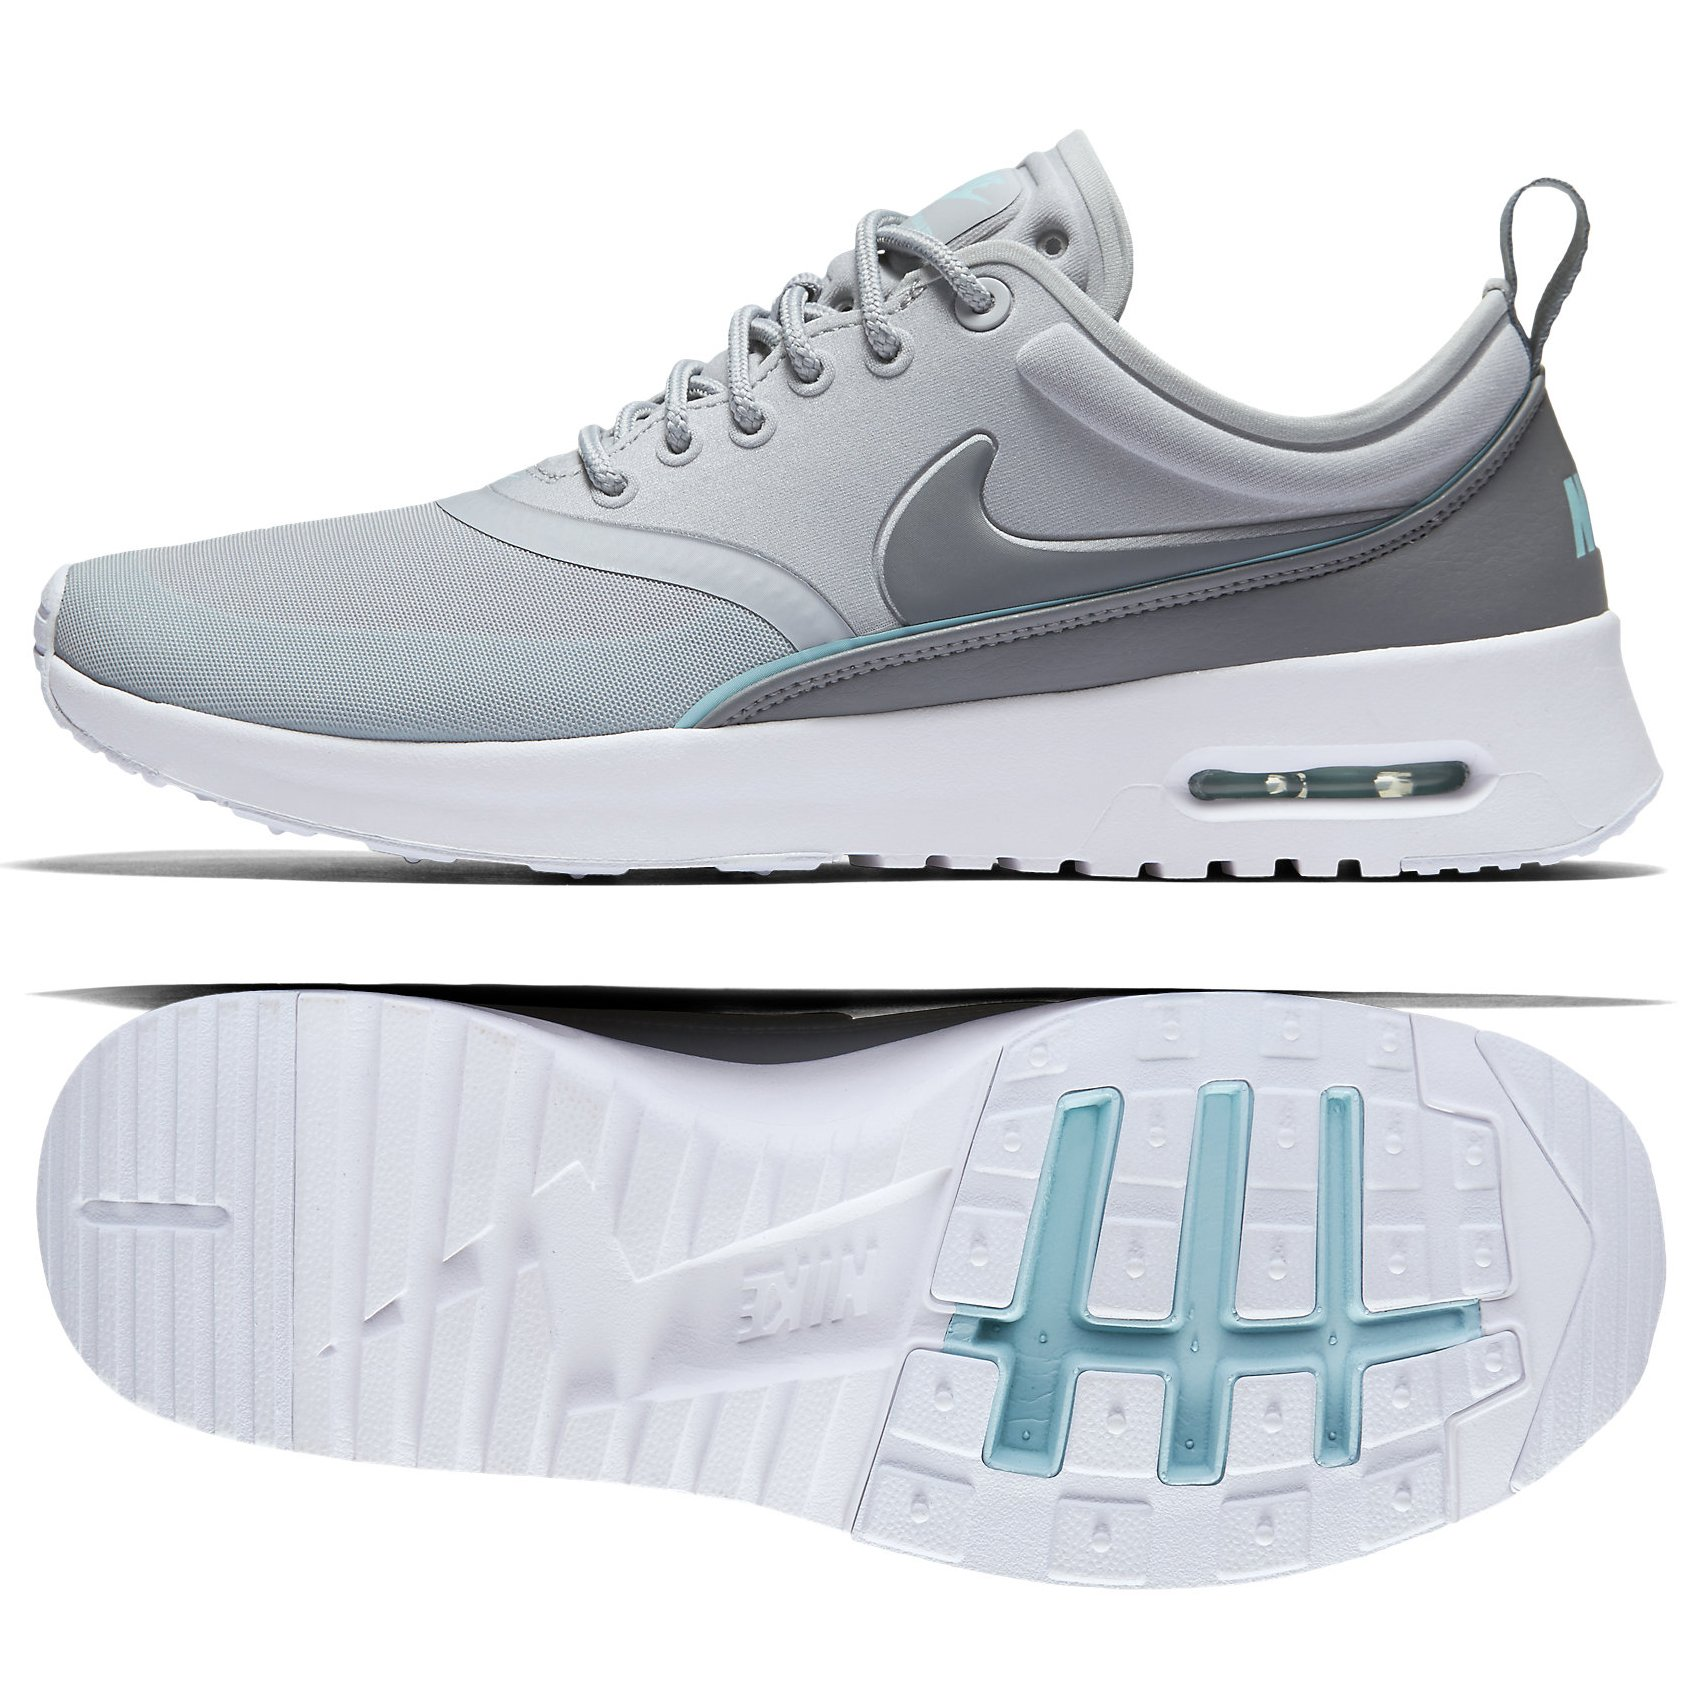 best website d6037 8ef40 Galleon - NIKE W Air Max Thea Ultra 844926-002 Grey Copa Blue Tint Mesh  Women s Shoes (Size 8)